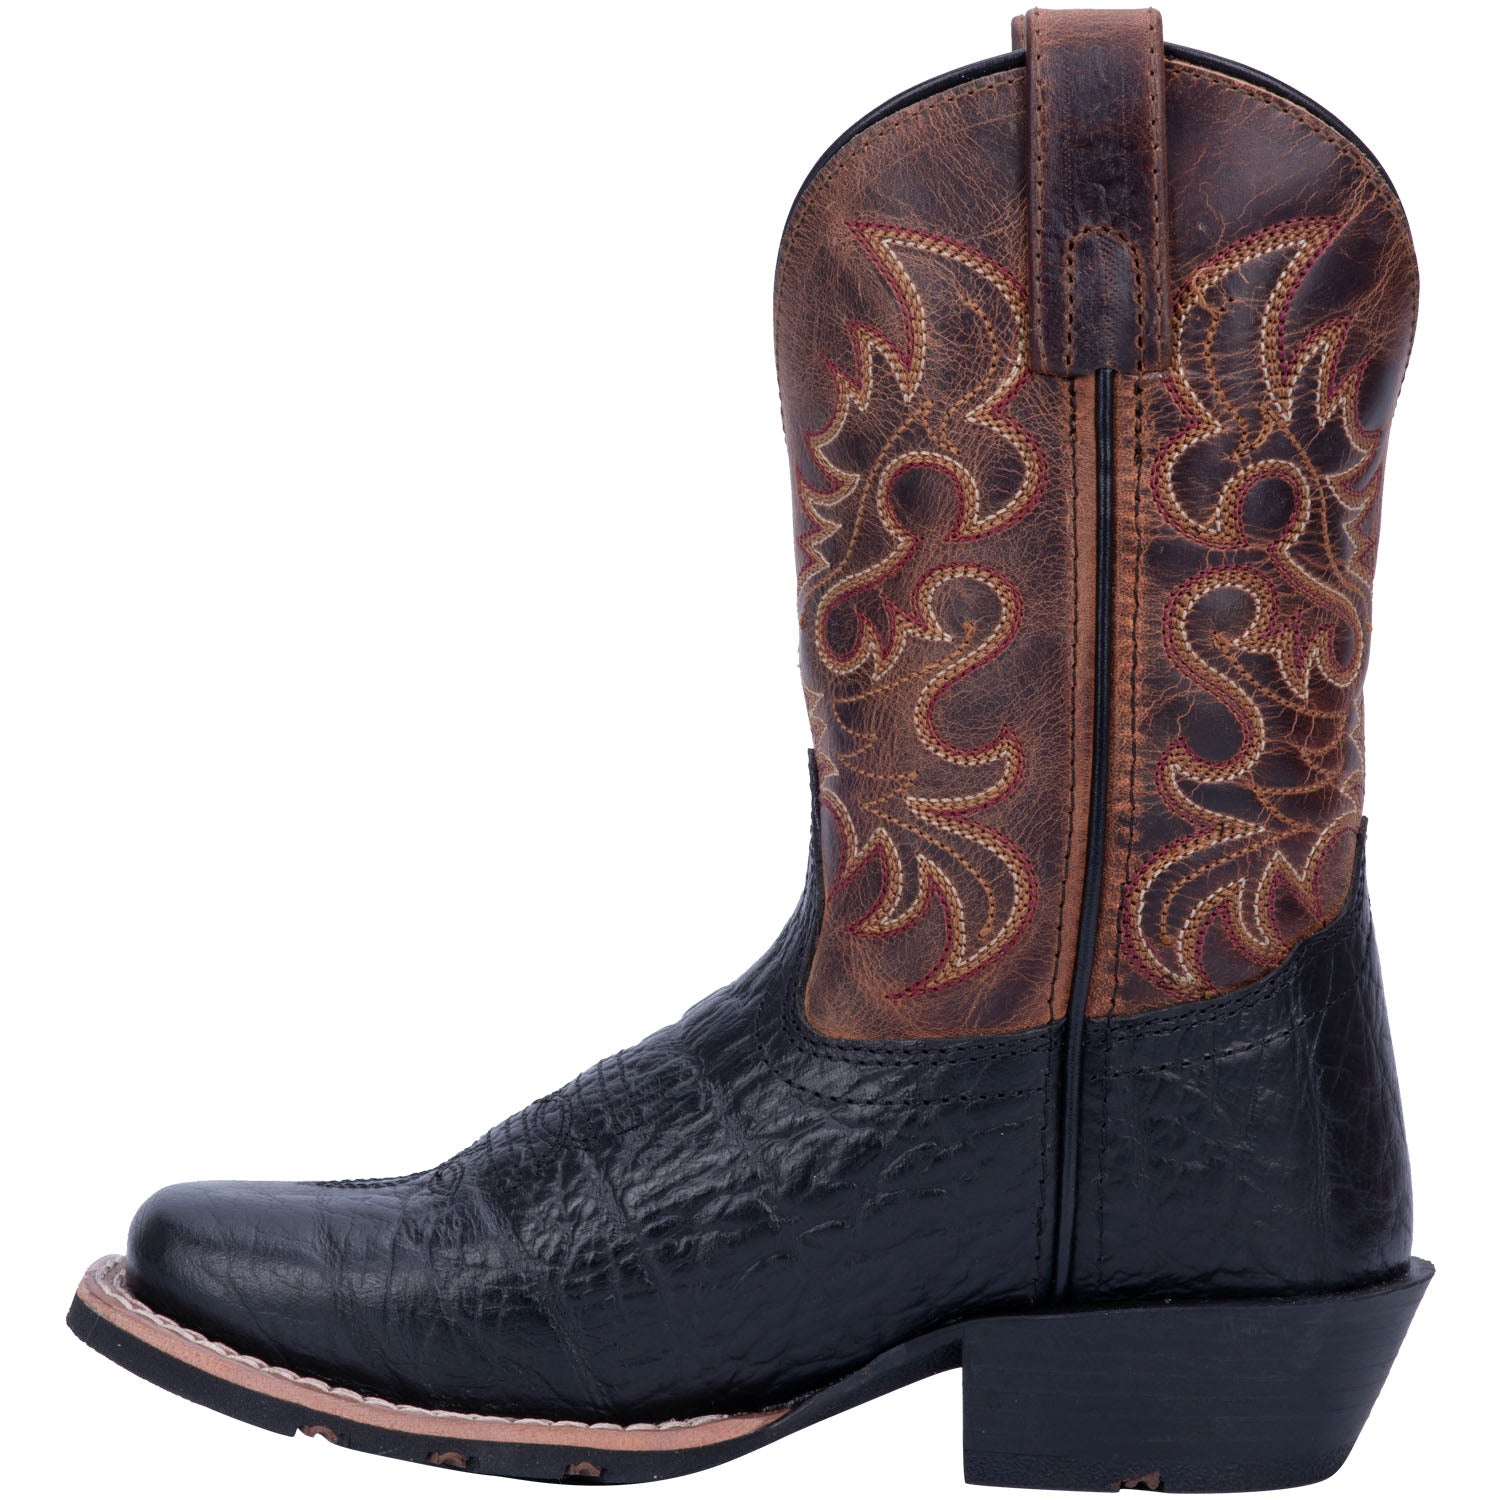 LITTLE RIVER LEATHER YOUTH BOOT 4253843488810